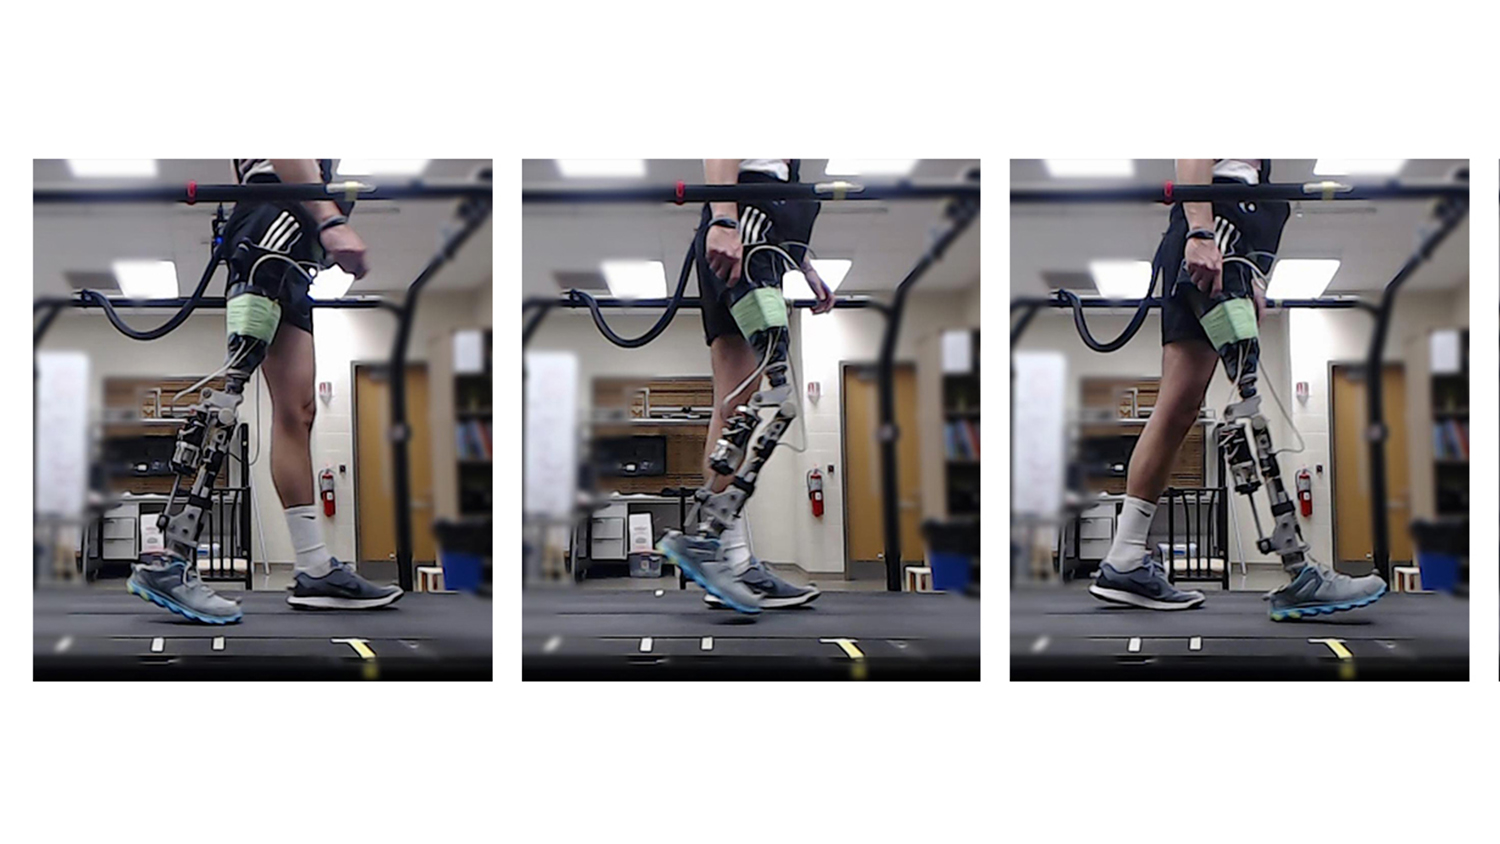 person with prosthetic leg walking on treadmill